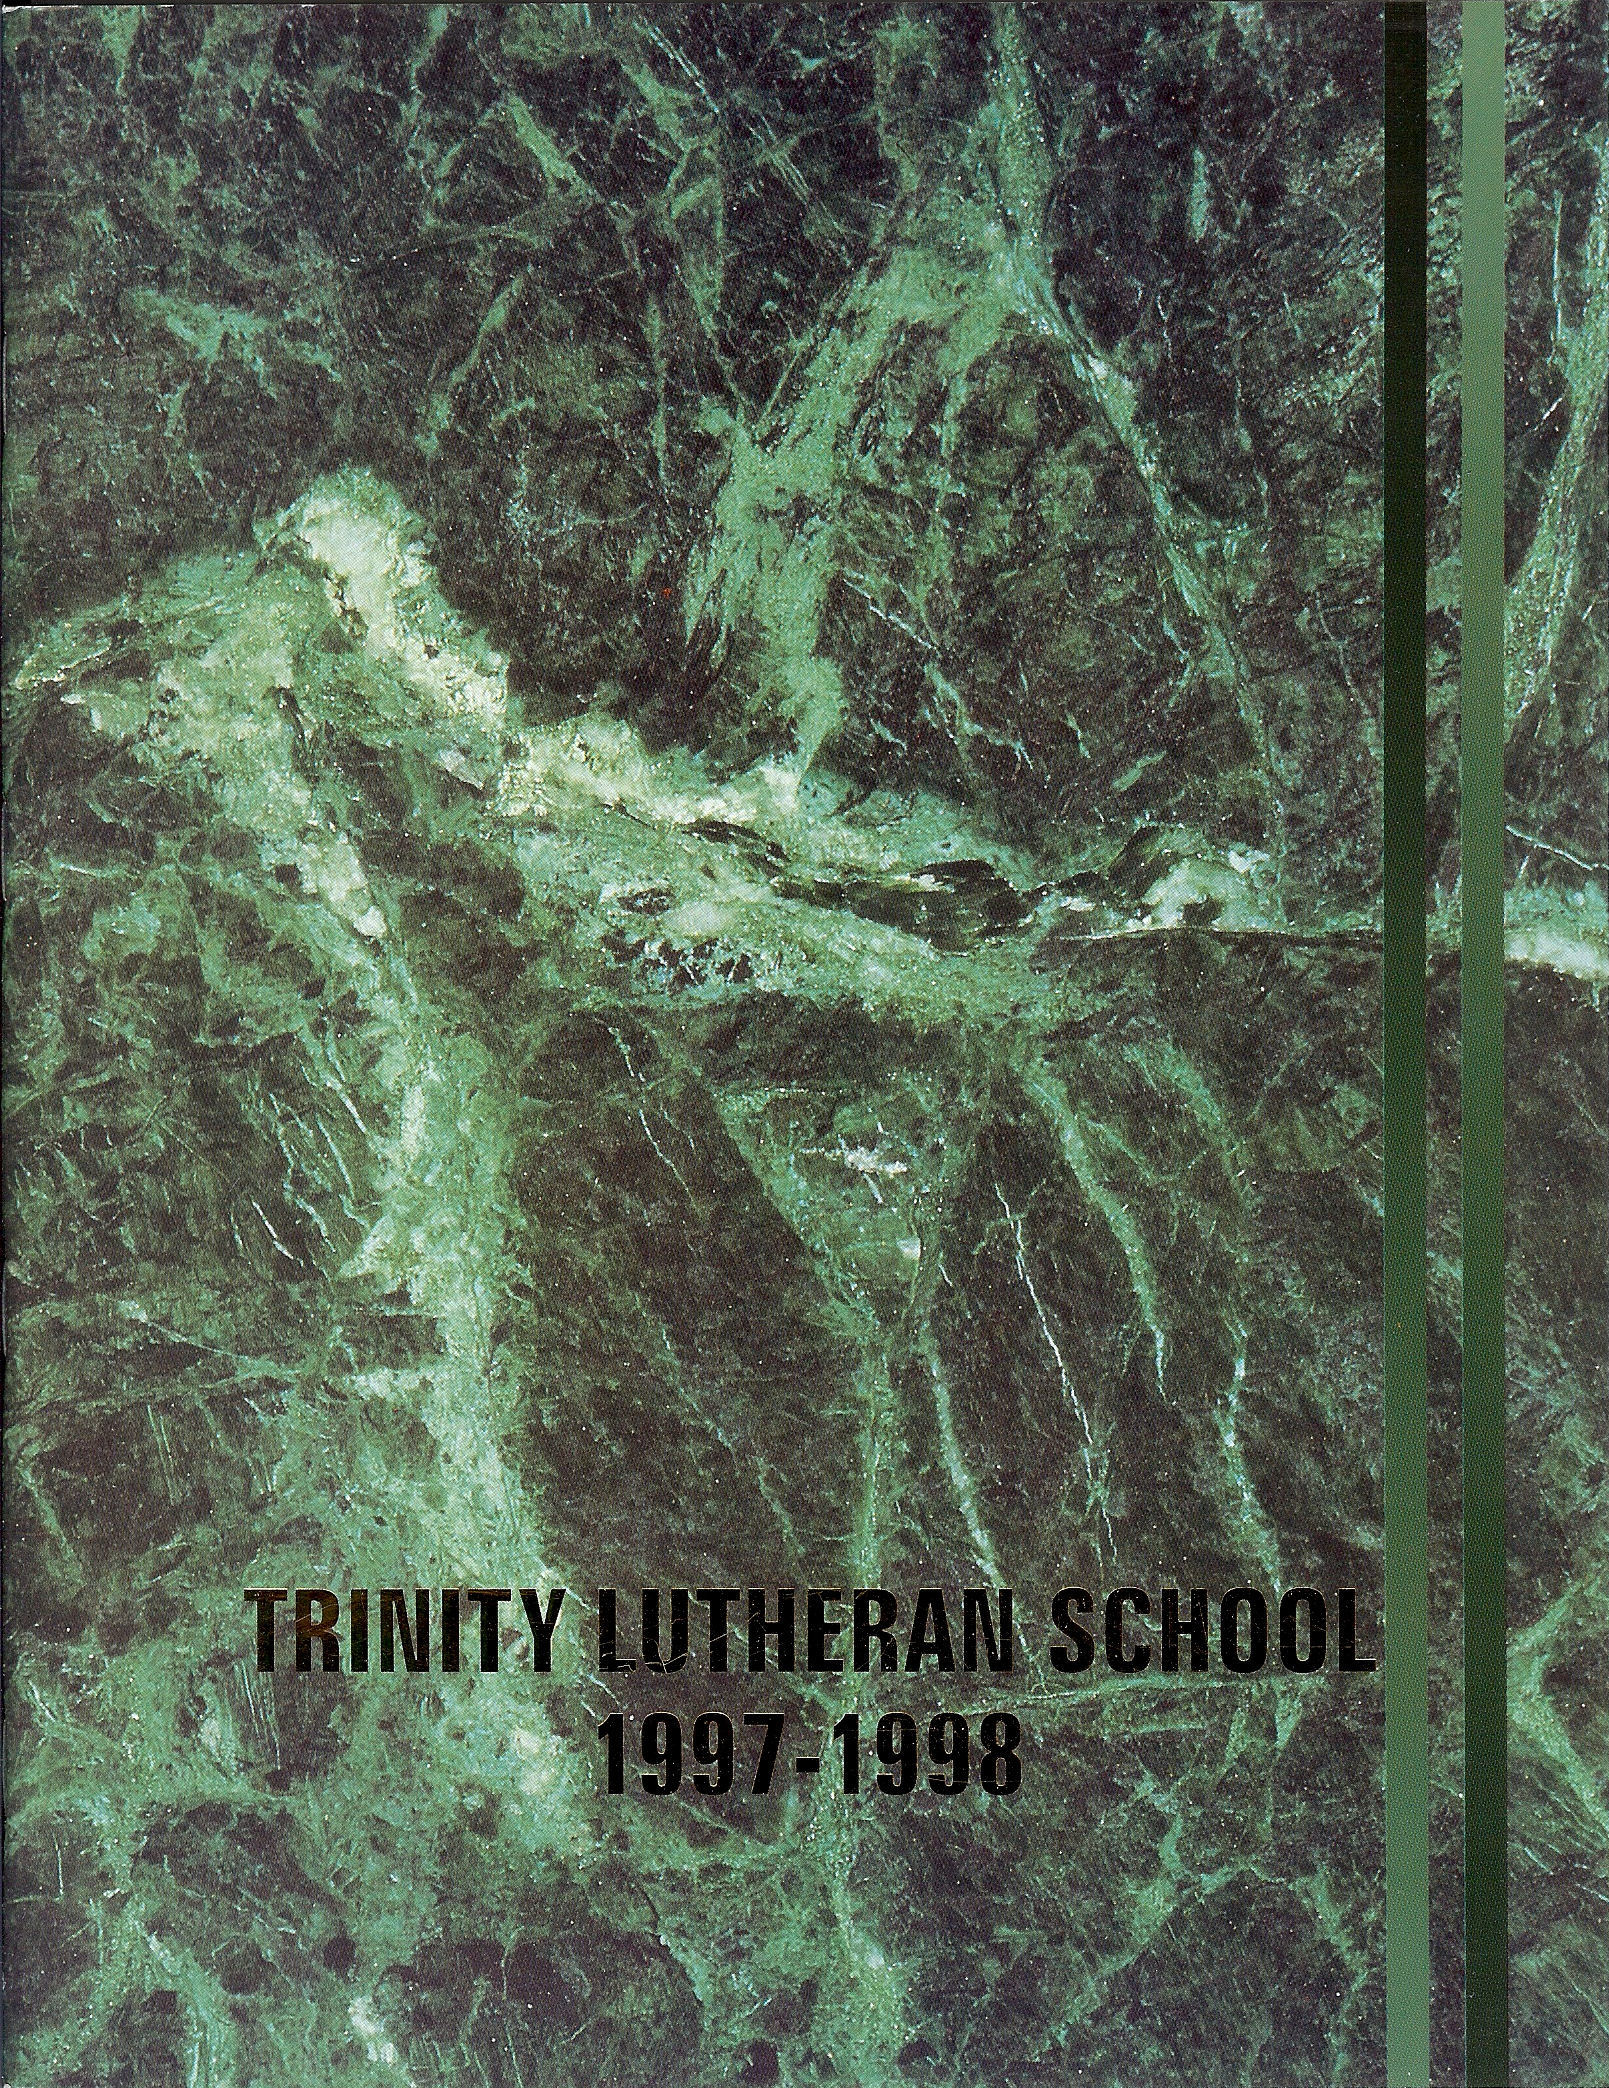 97 - 98 Yearbook Cover